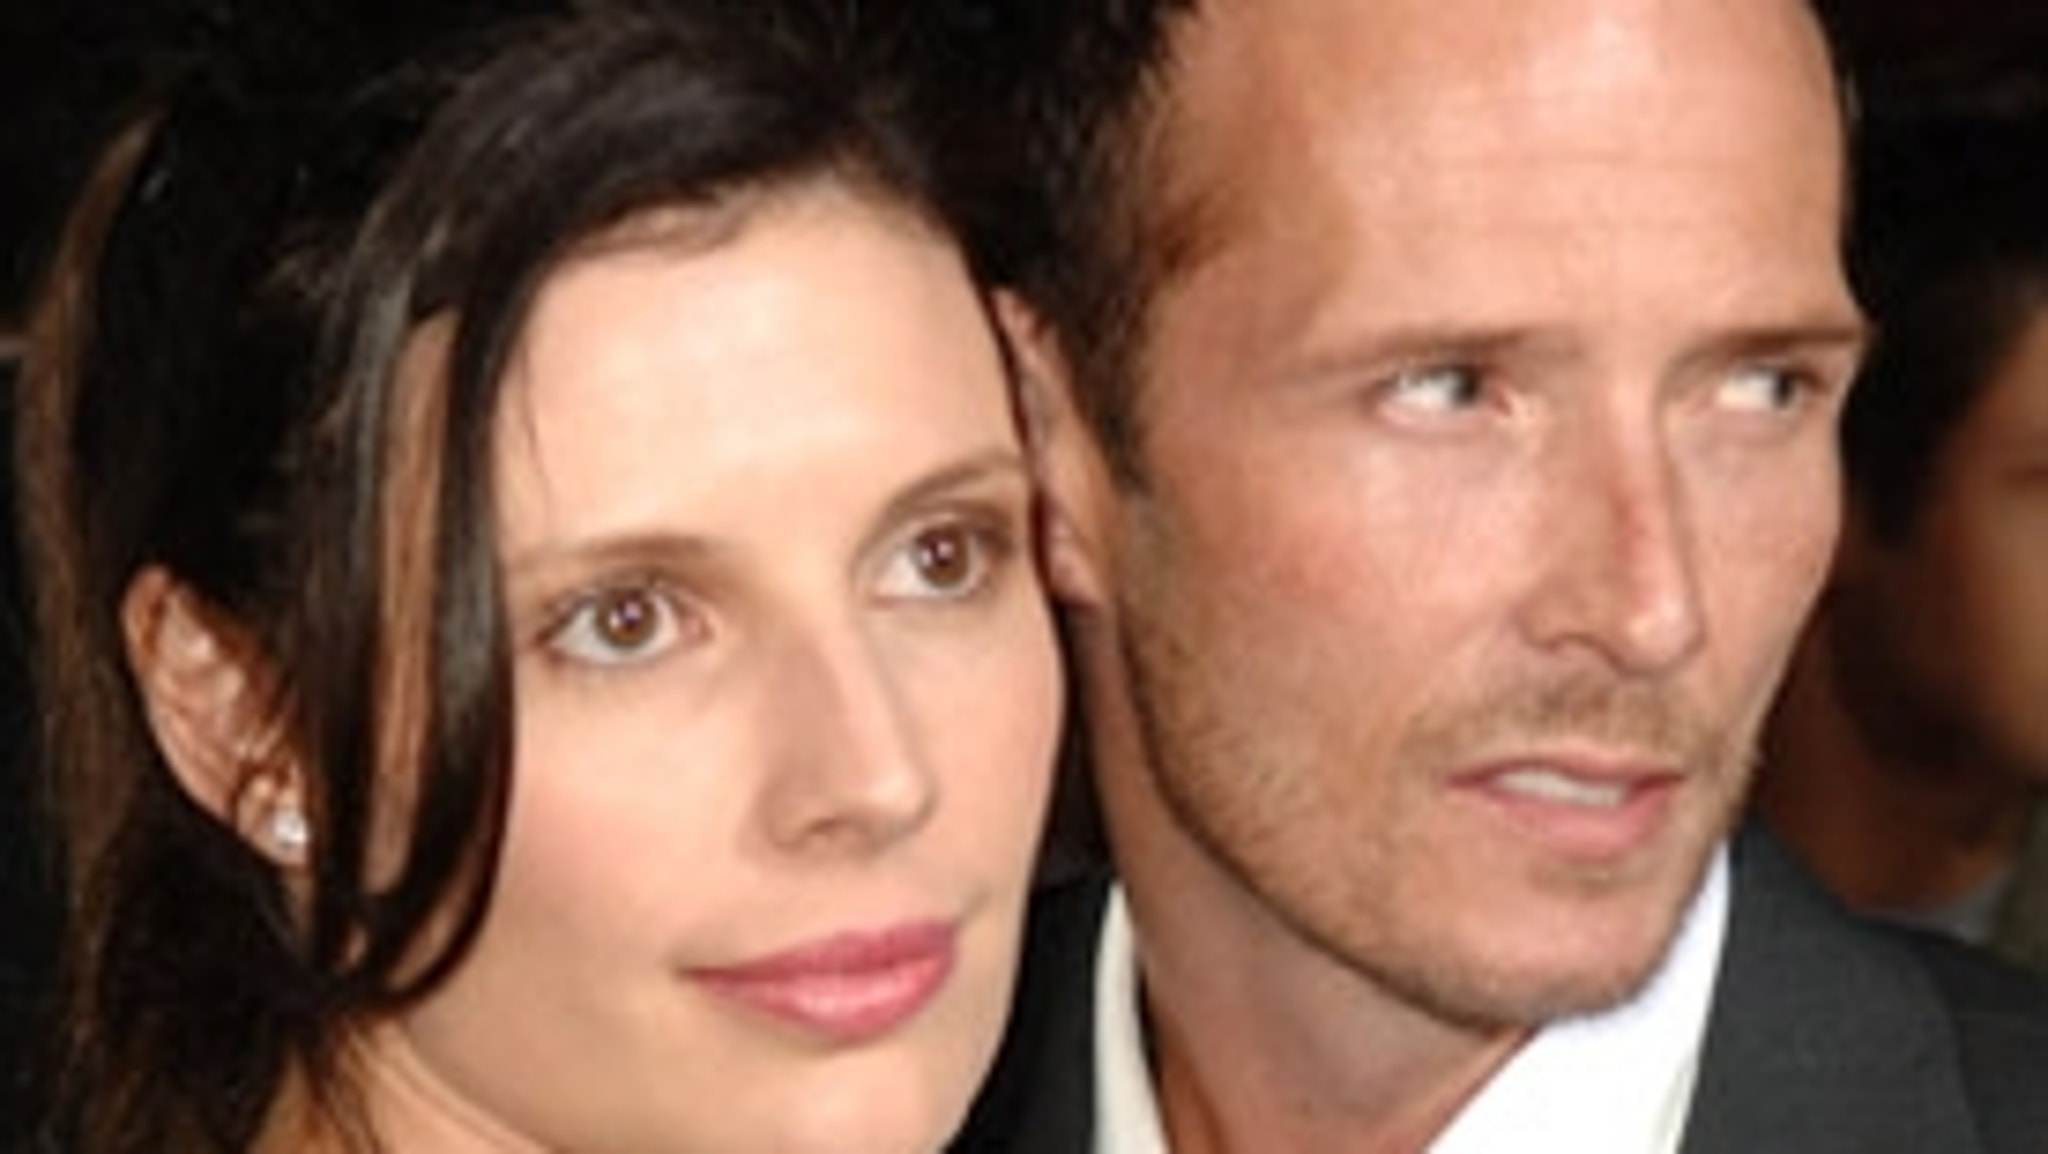 Scott Weiland's Ex, Mary Forsberg, Publishes Essay Don't Glorify This Tragedy In Rolling Stone